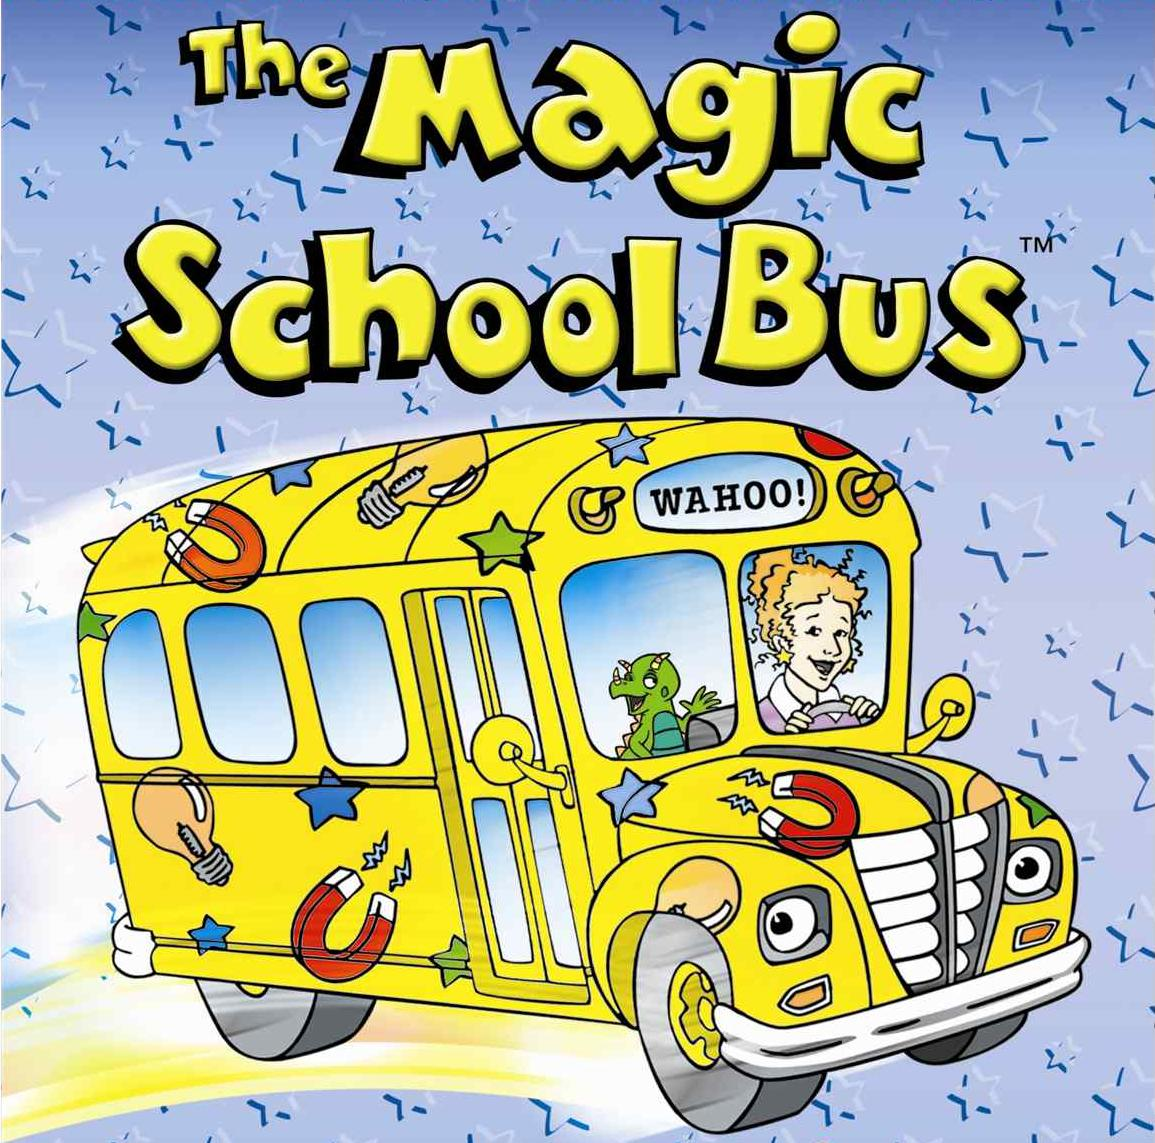 magic school bus character.jpg